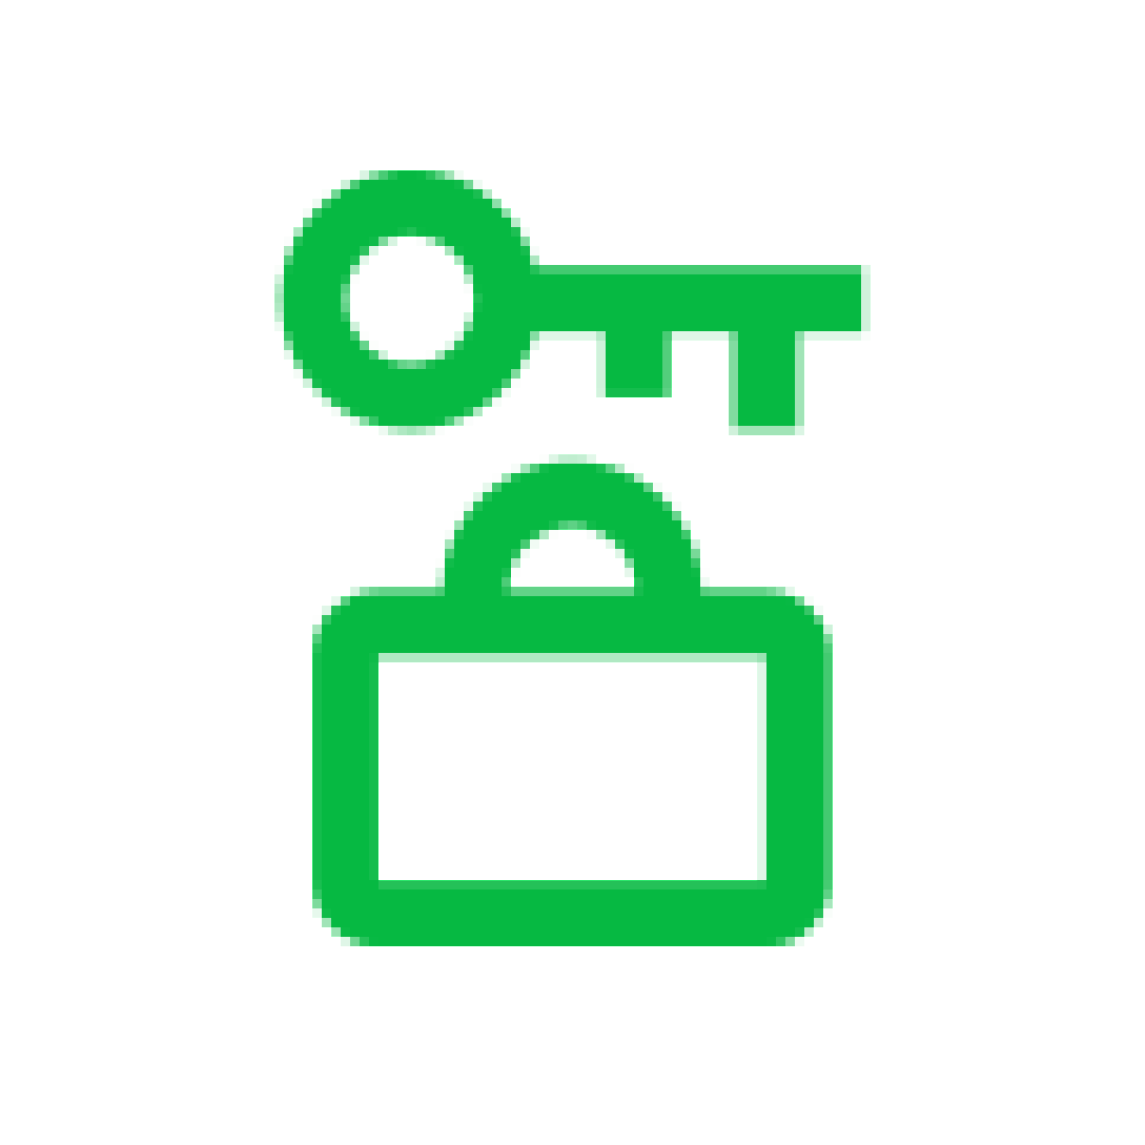 secure_icon.png [1.61 KB]